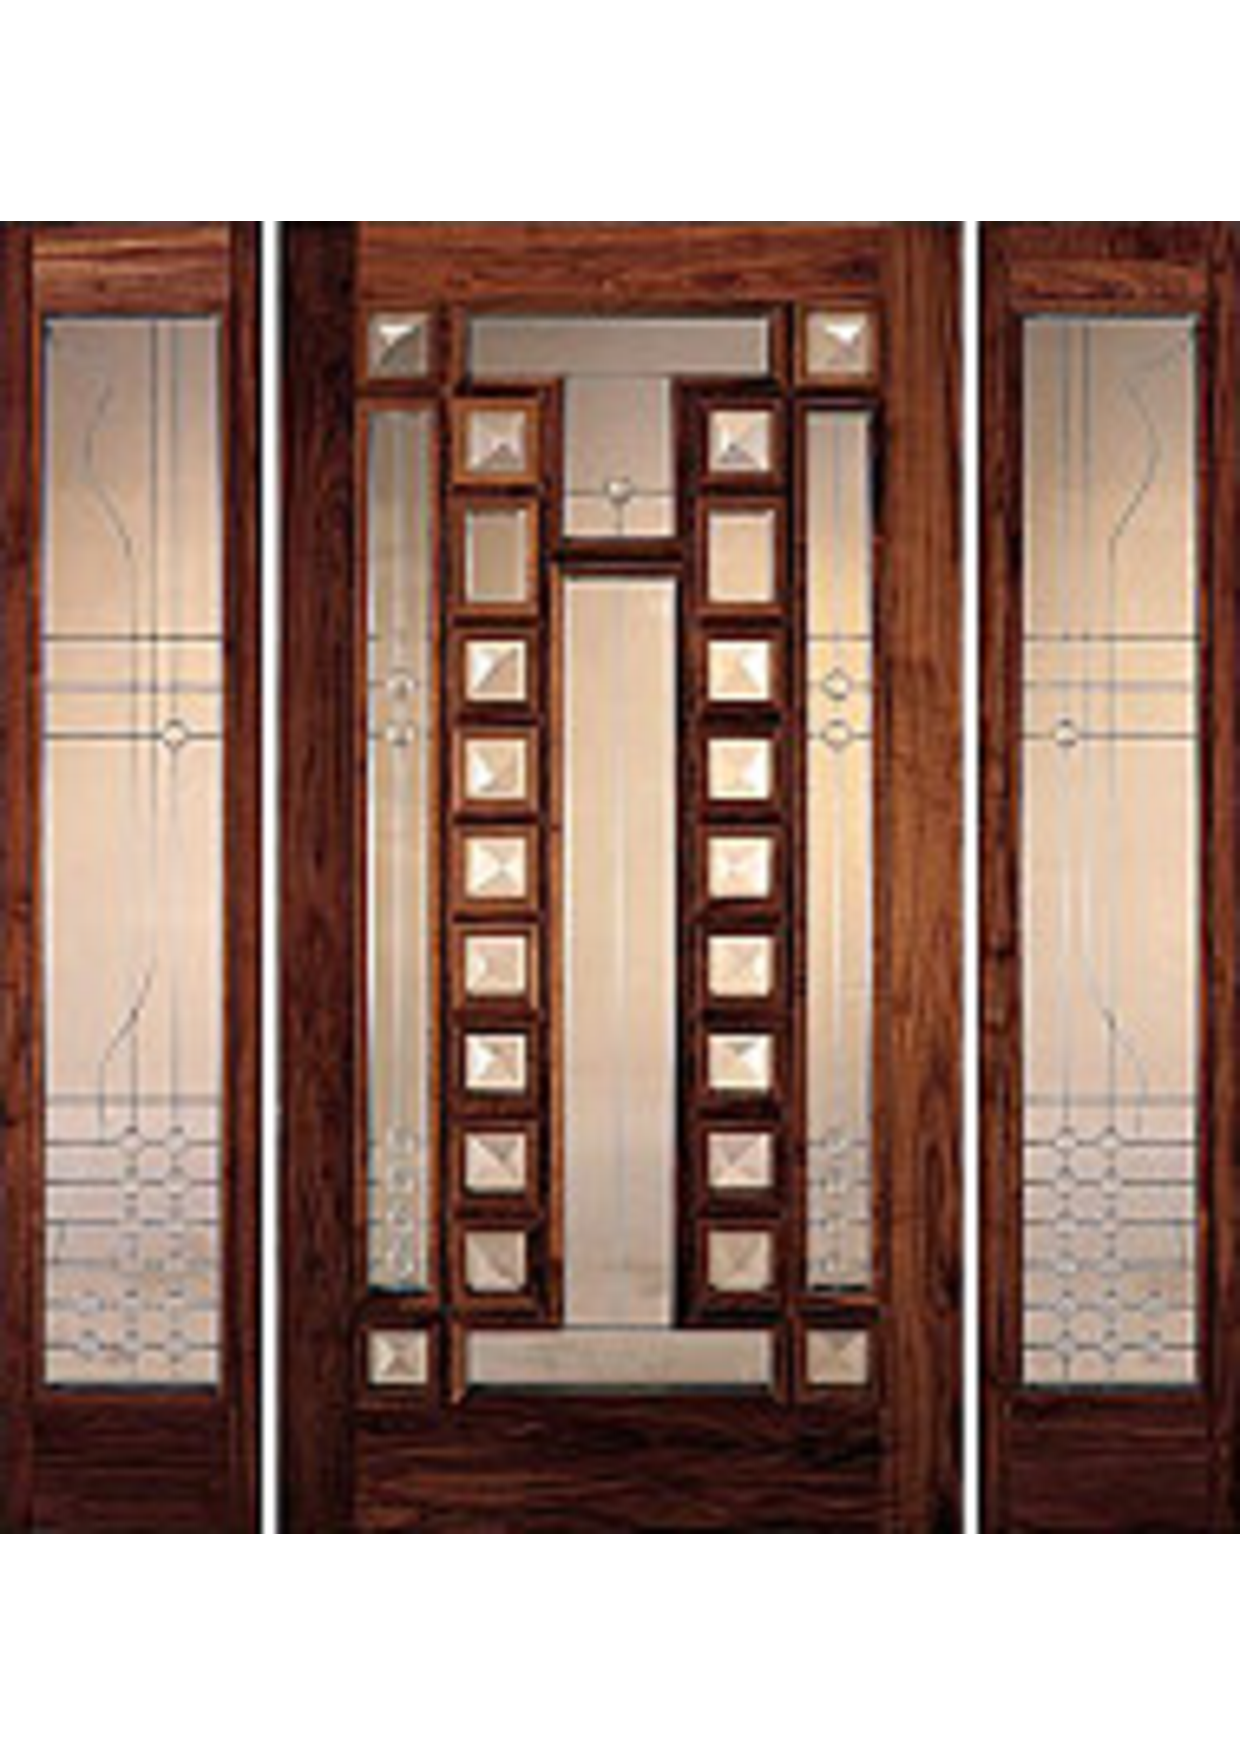 Living room door designs in india nakicphotography for Door design picture